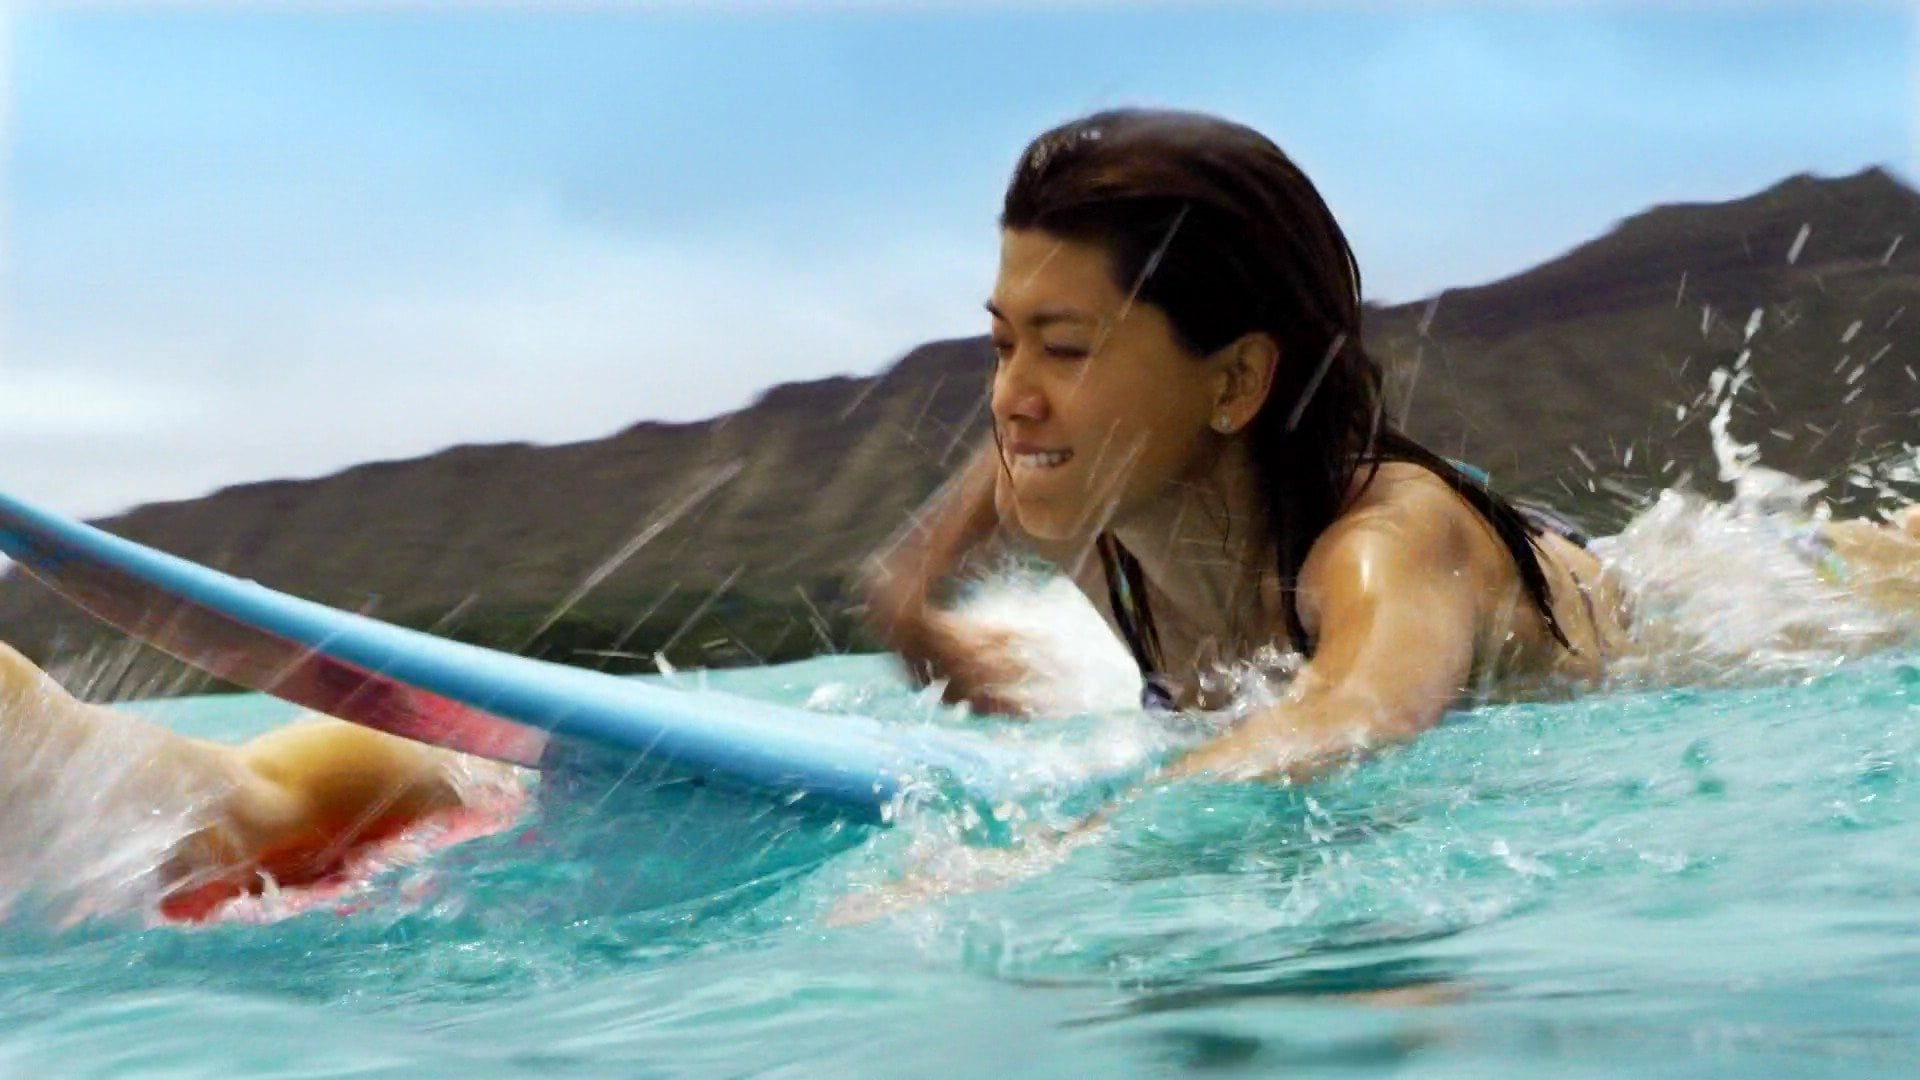 Hawaii Five-0 - Season 5 Episode 3 : Kanalu Hope Loa (The Last Break)